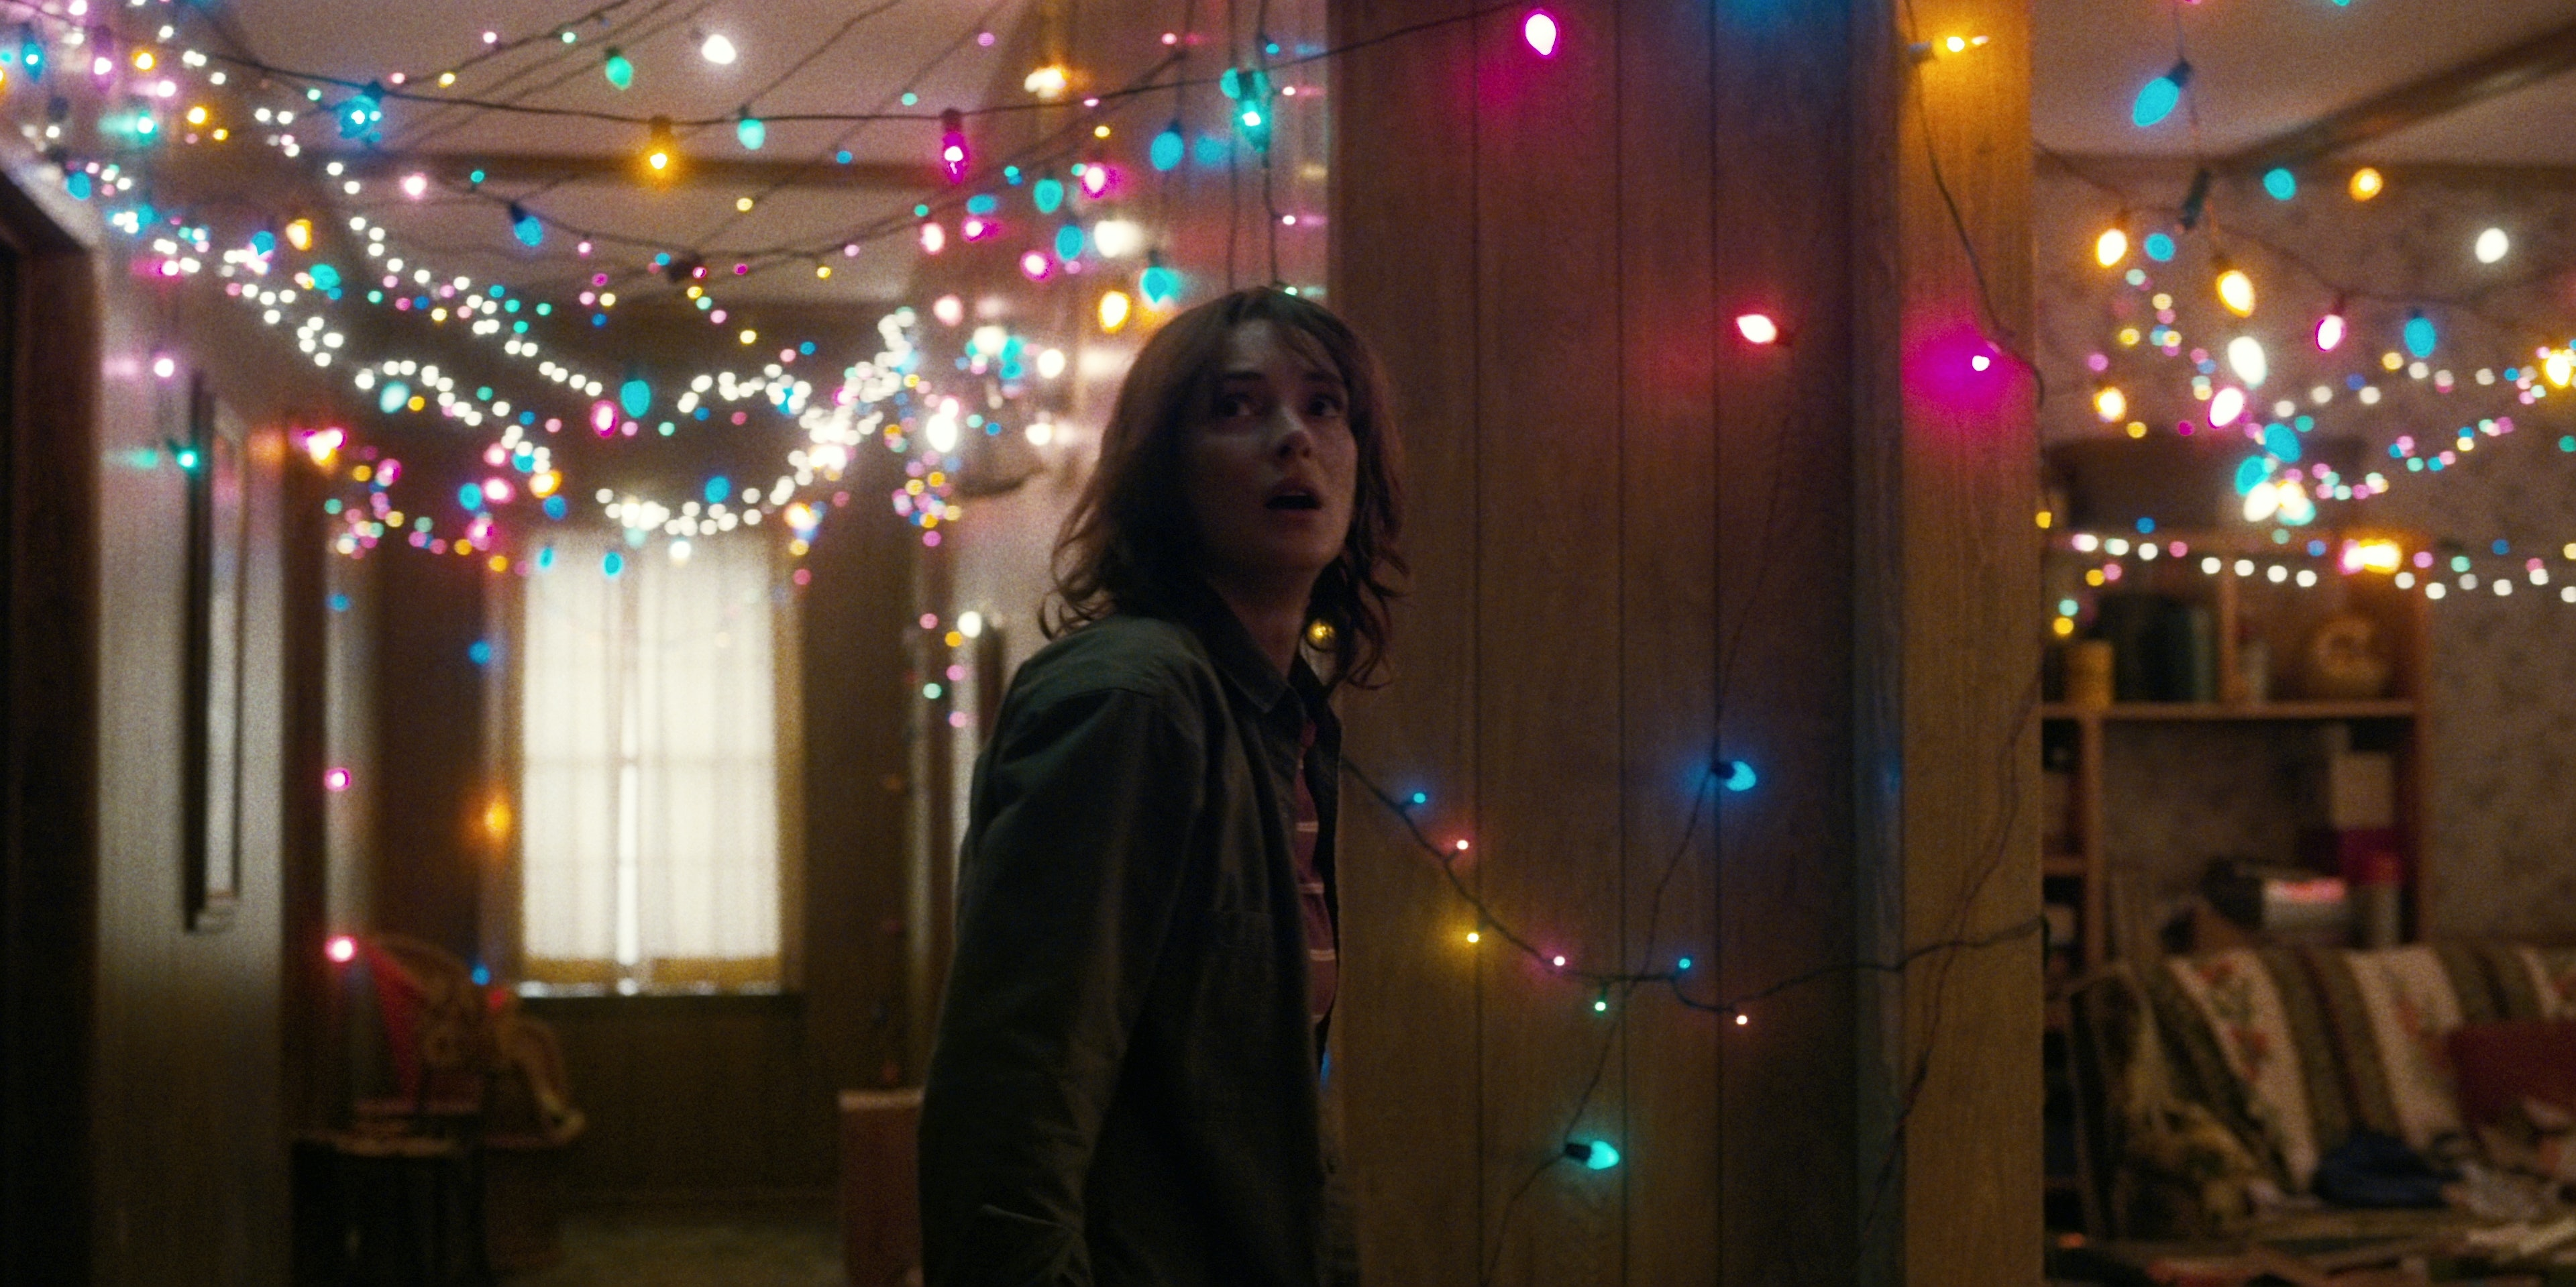 Stranger Things Christmas Lights.What Do The Lights Mean On Stranger Things Joyce Made An